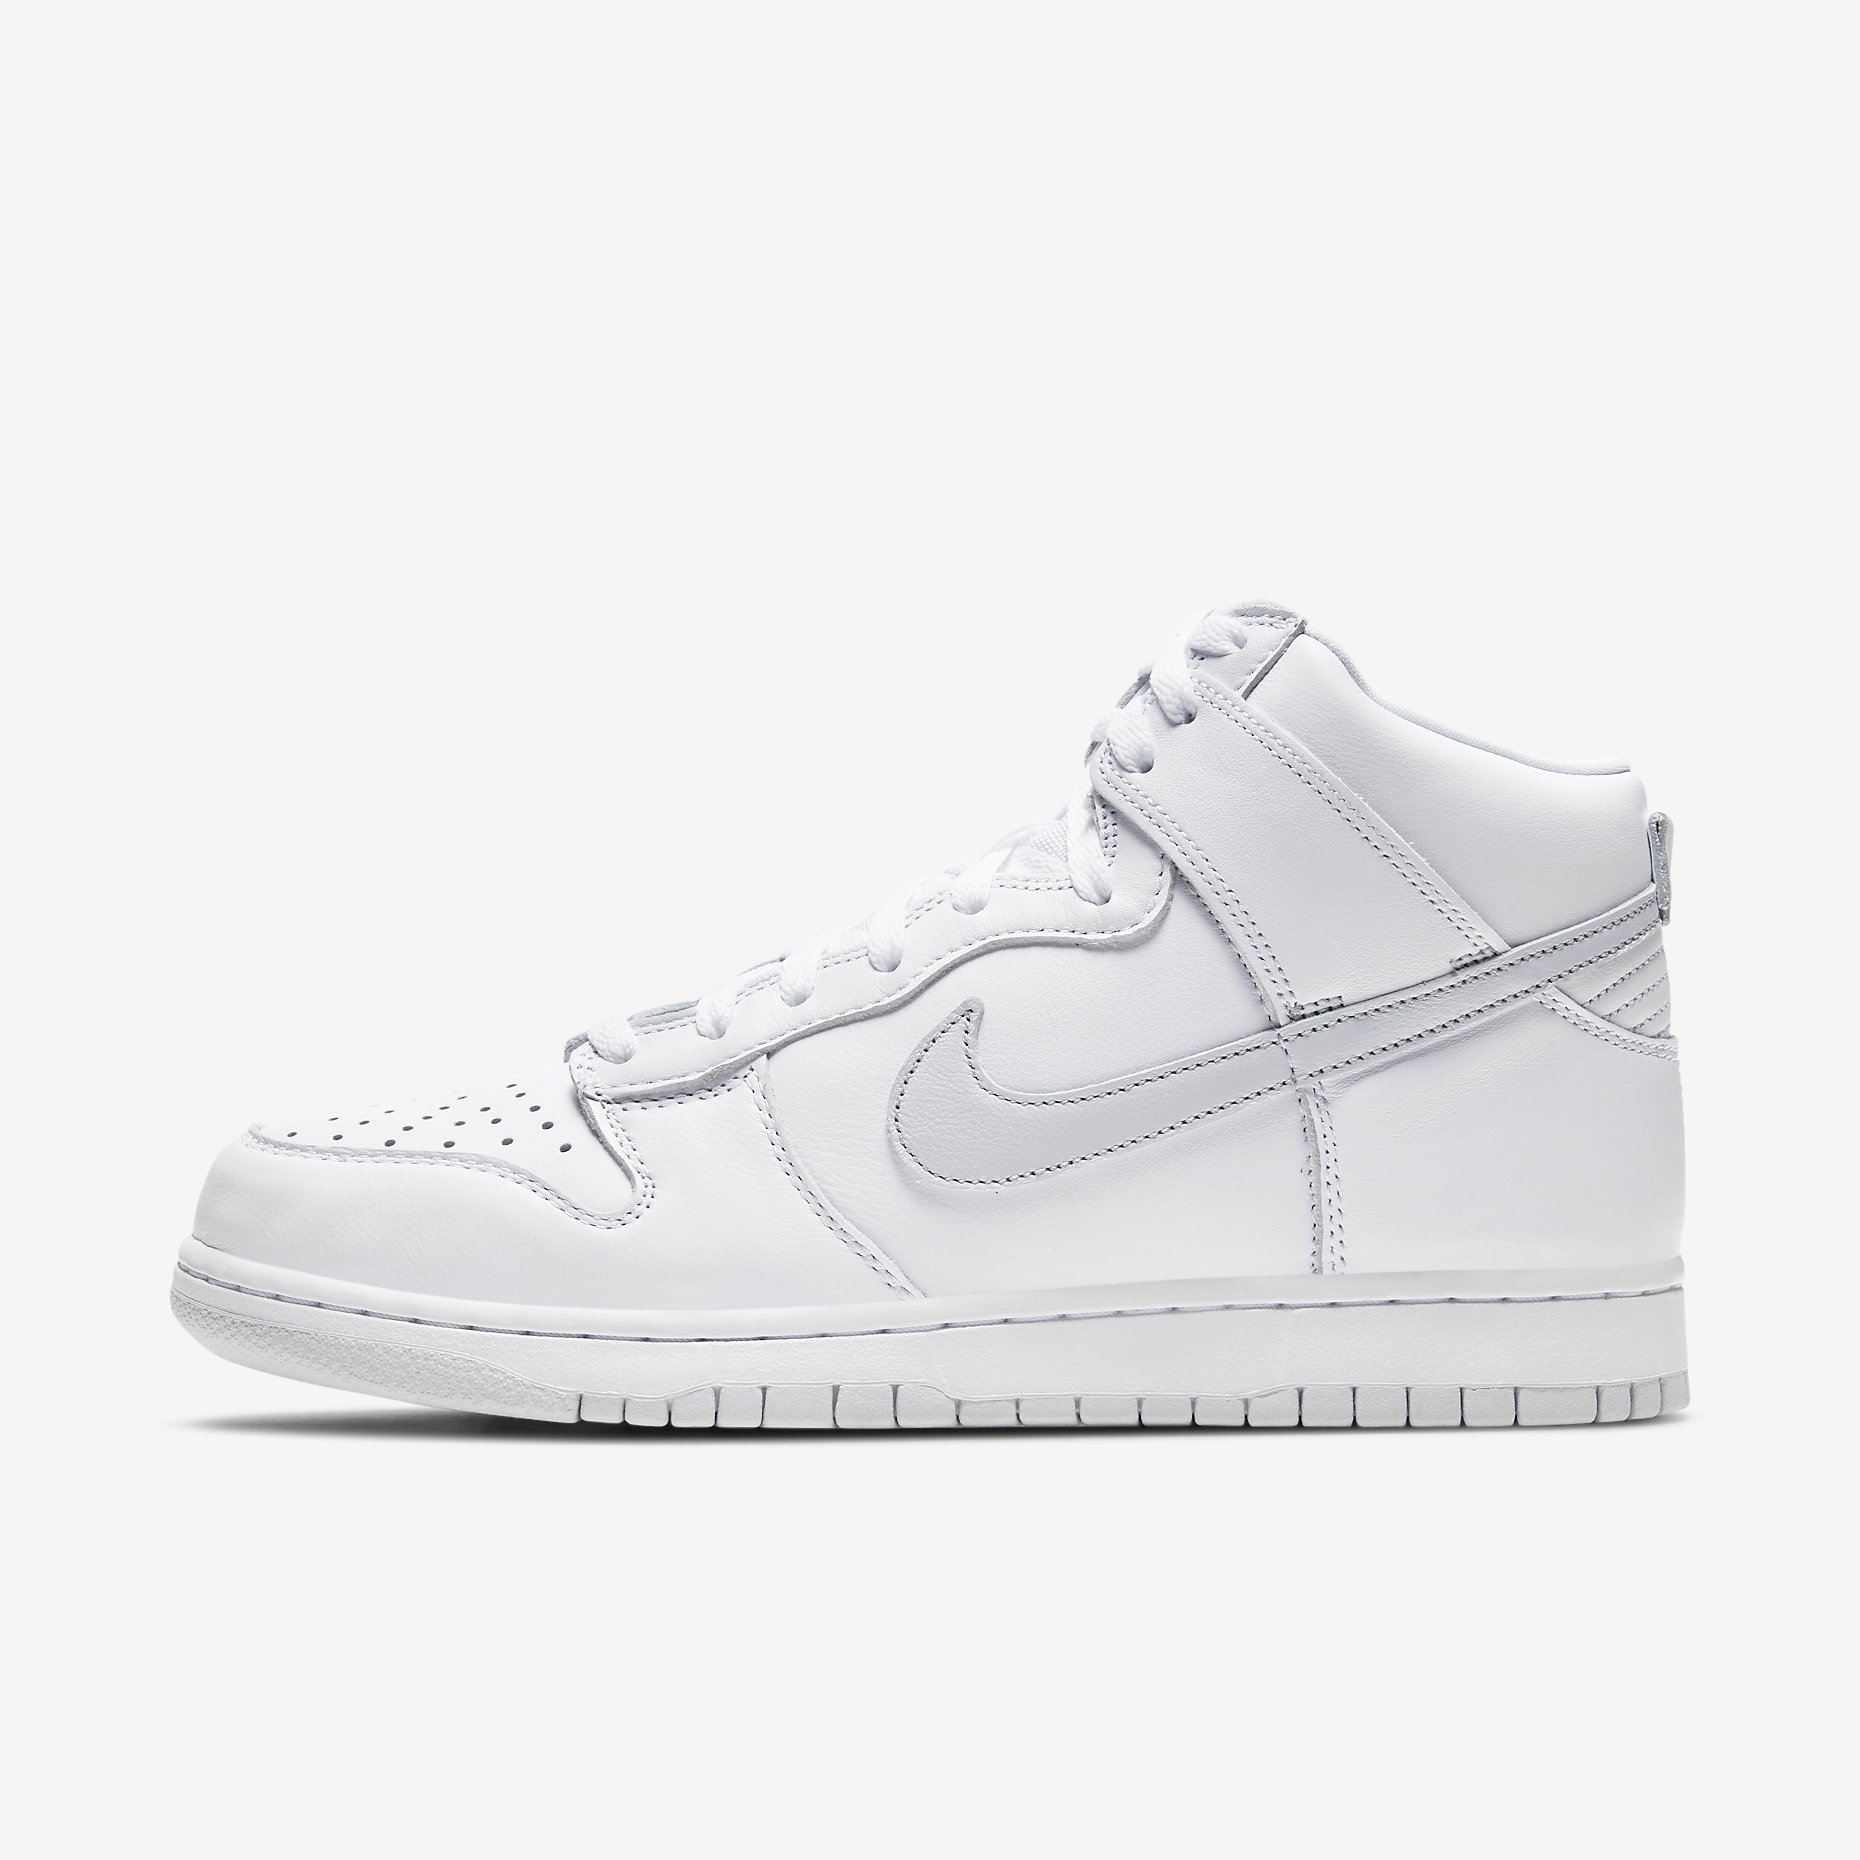 Nike Dunk High SP 'Pure Platinum'}